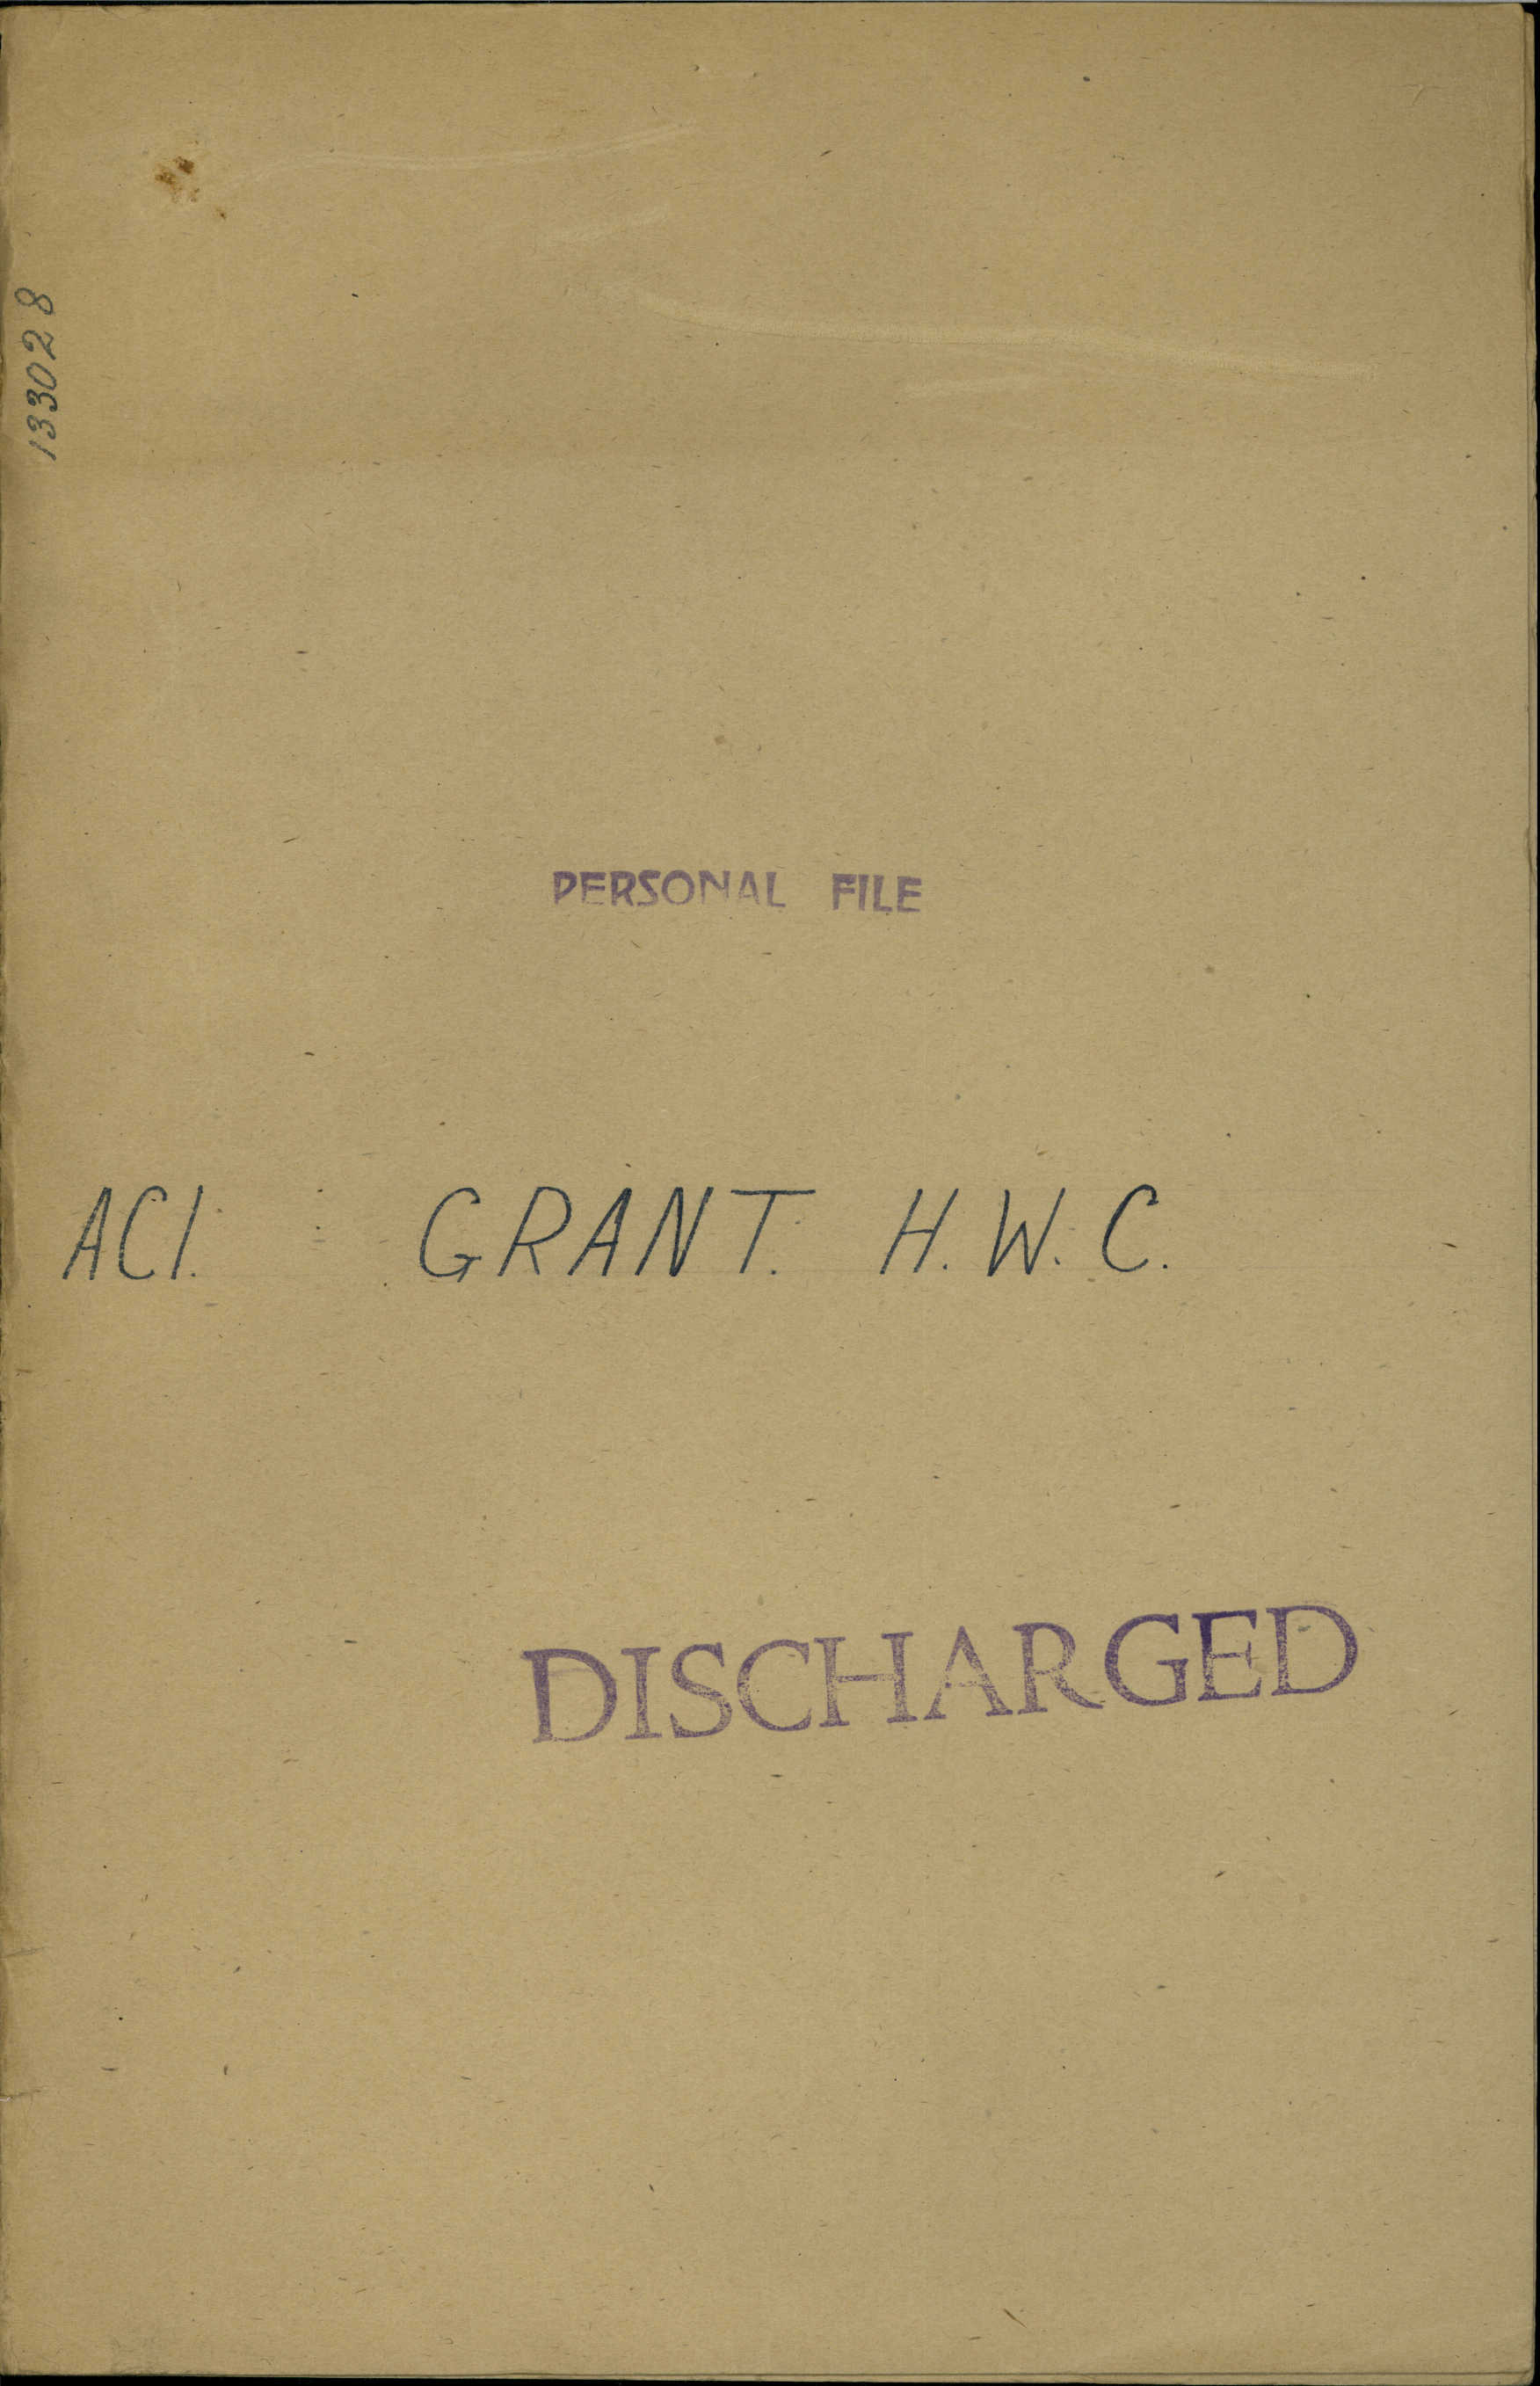 World War I Military Service Record of William Alfred Pracy